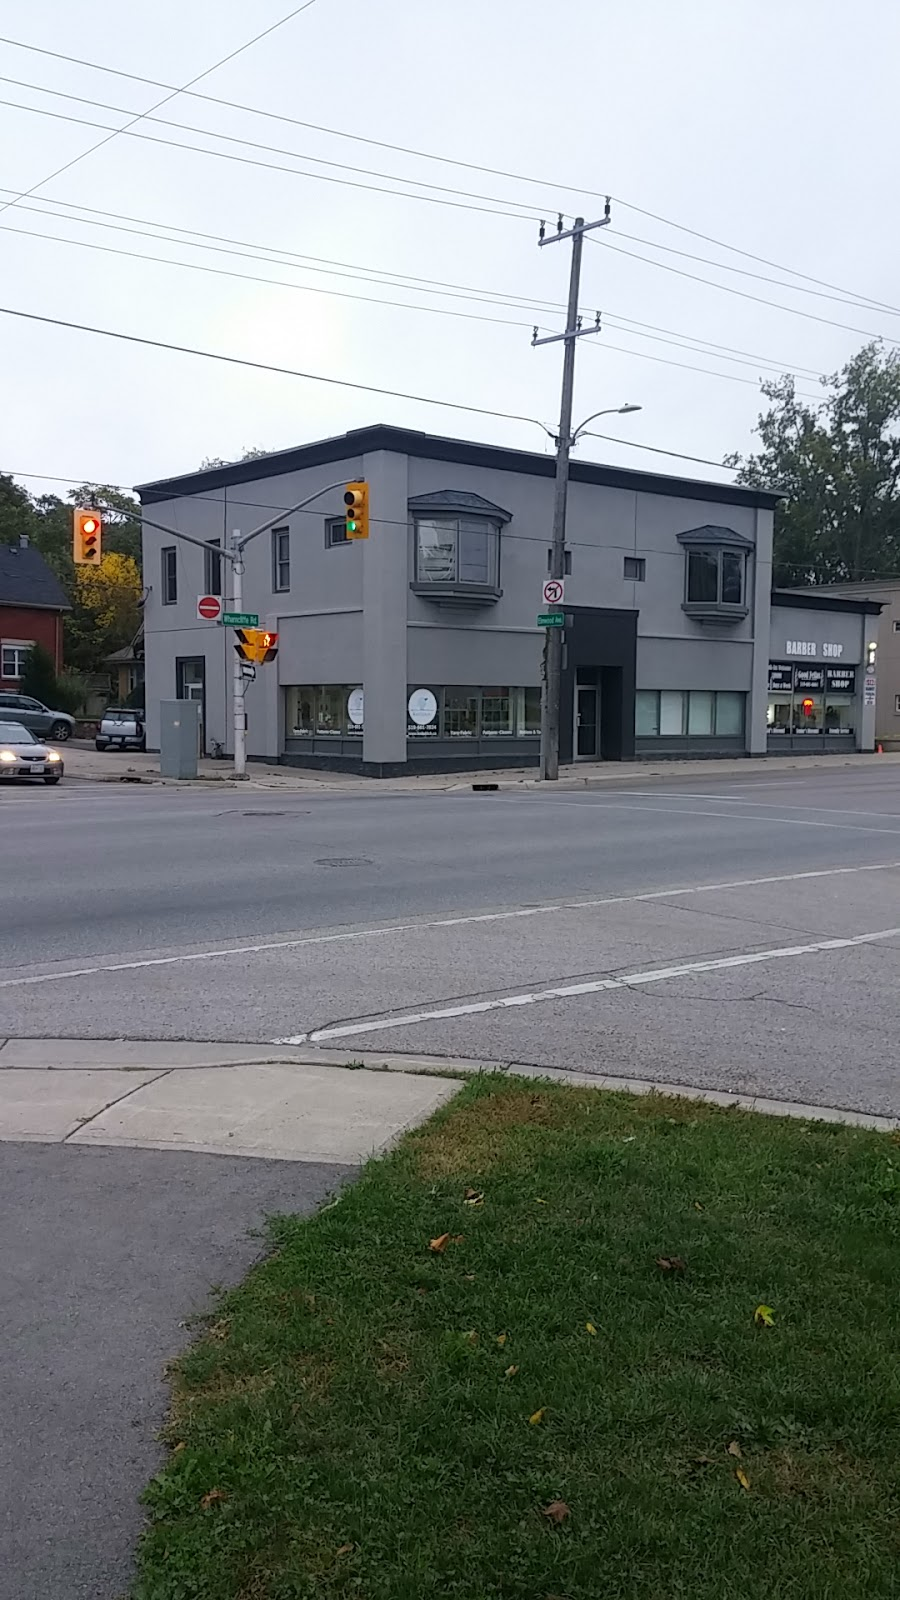 Knit Stitch   store   Canada, 232 Wharncliffe Road South, London, ON N6J 2L4, Canada   5196017024 OR +1 519-601-7024